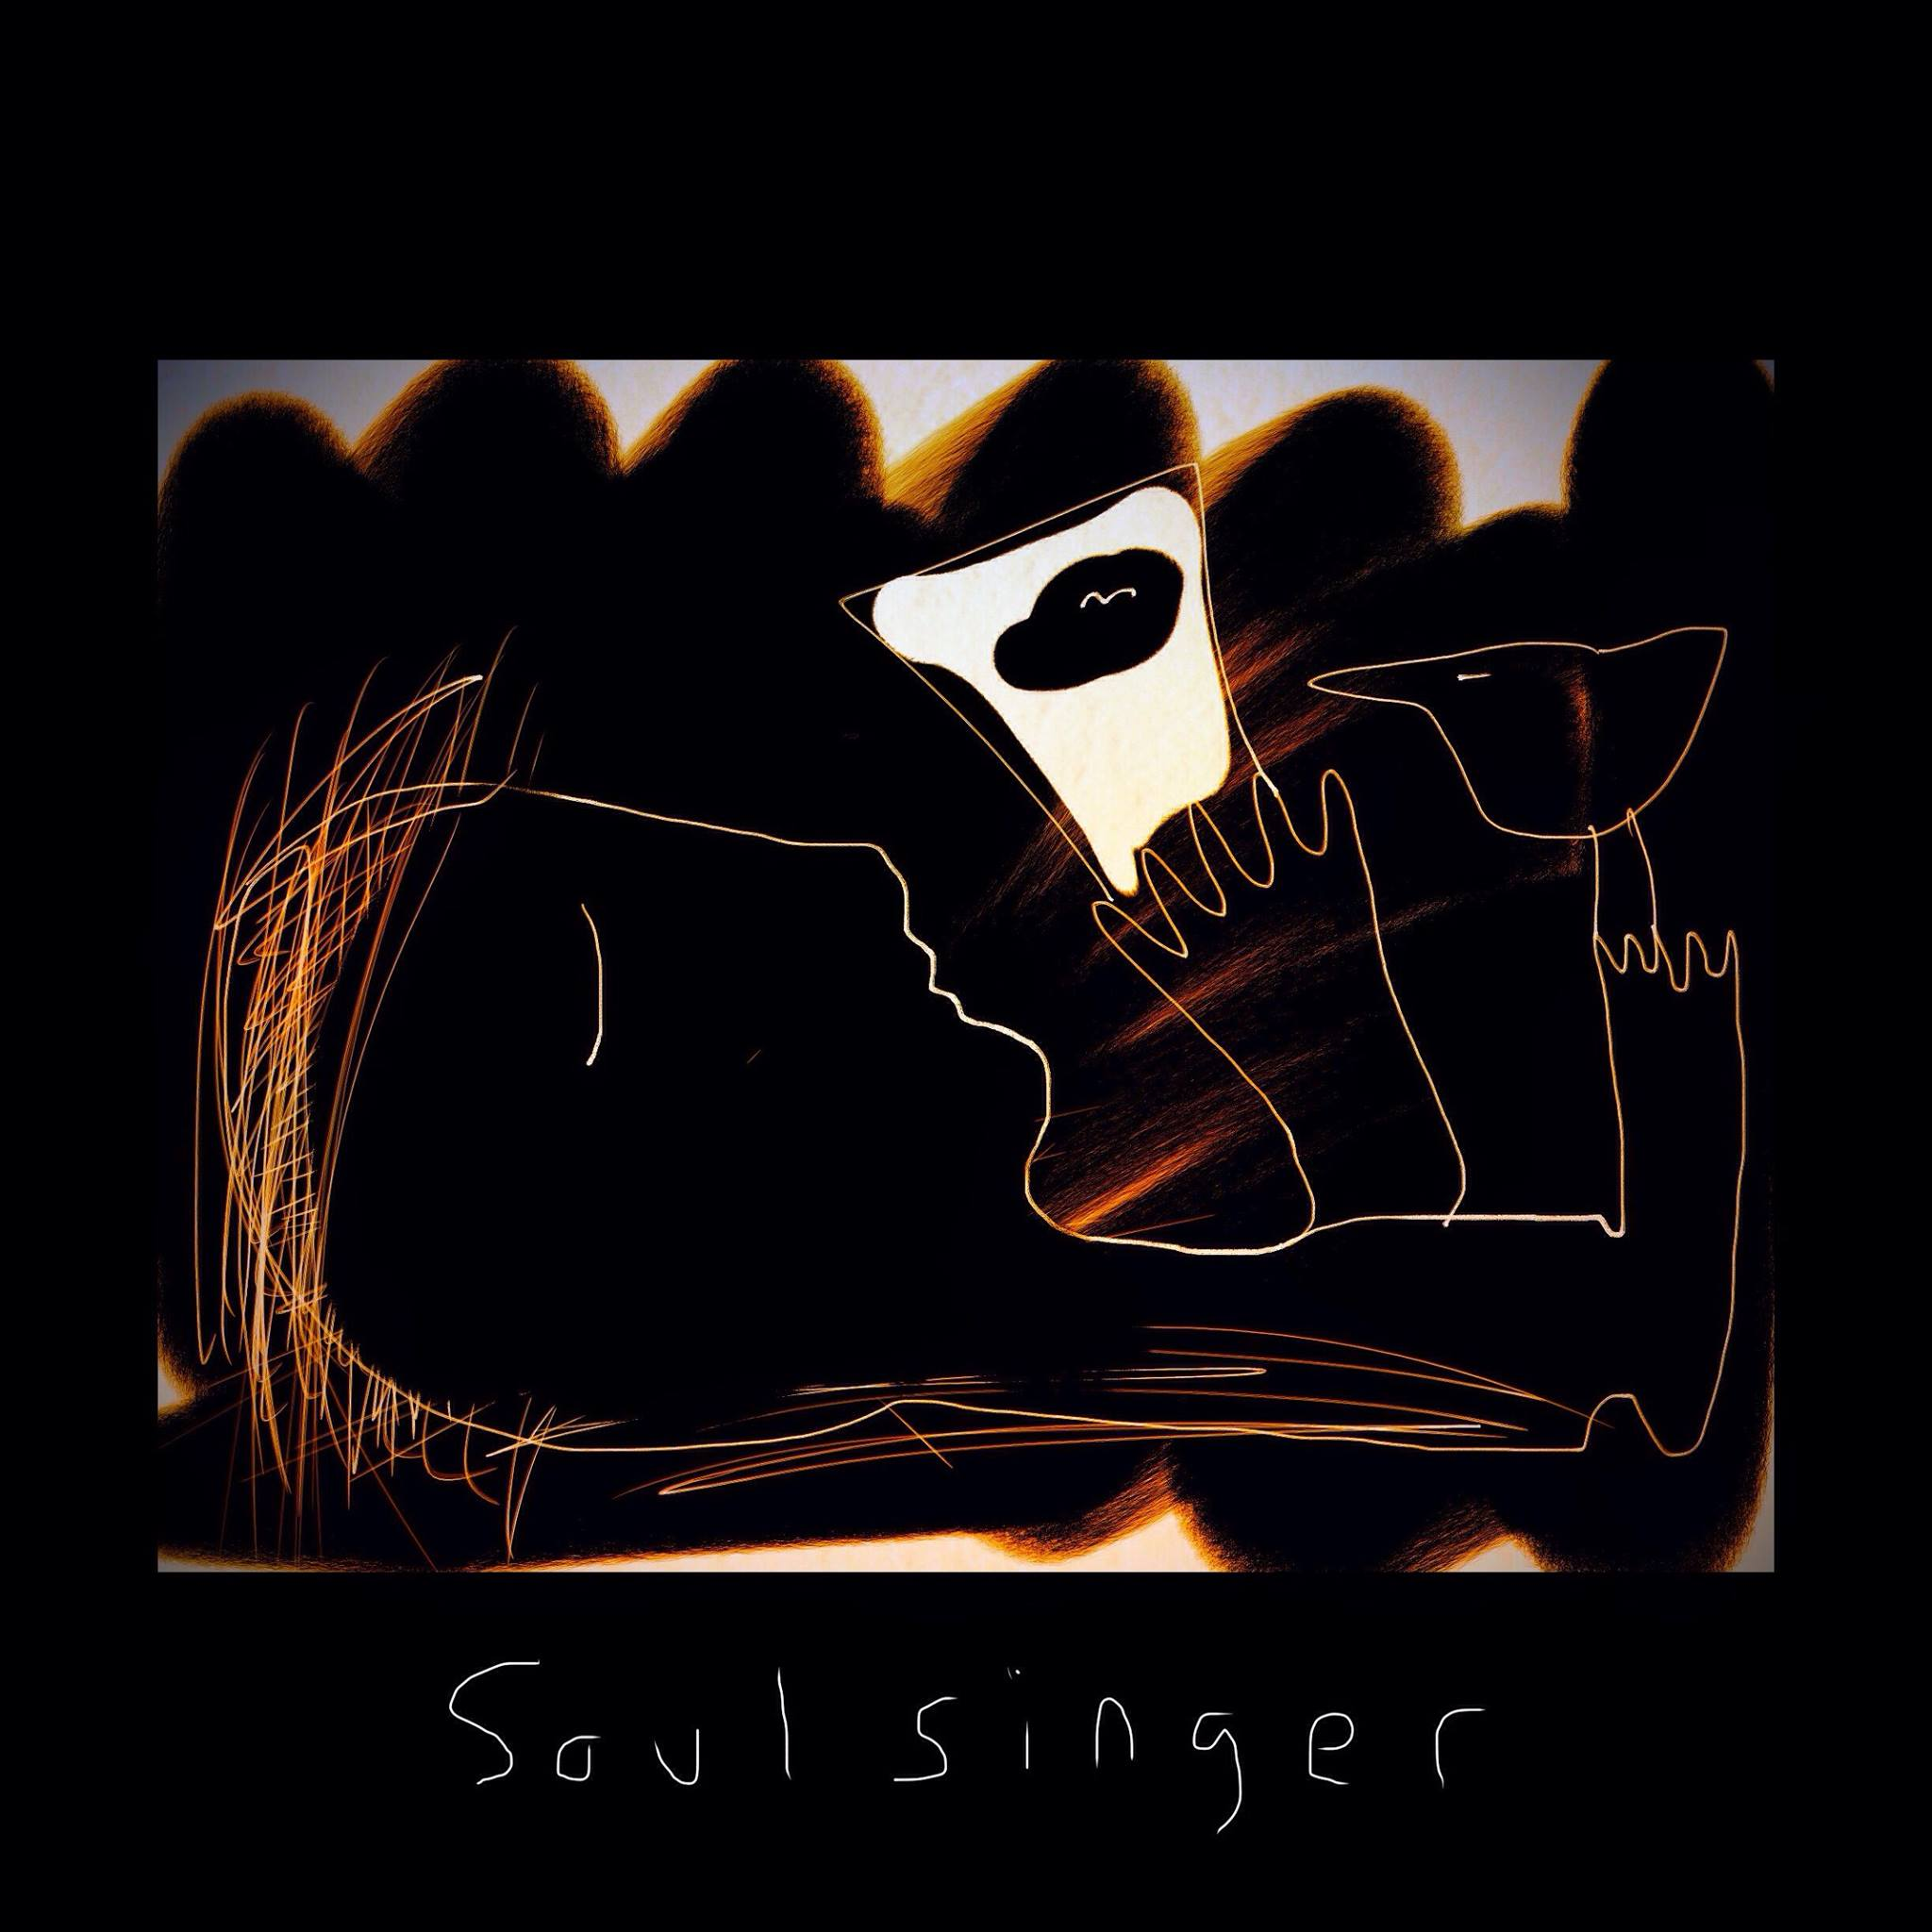 The soul singer, illustration Malin Skinnar